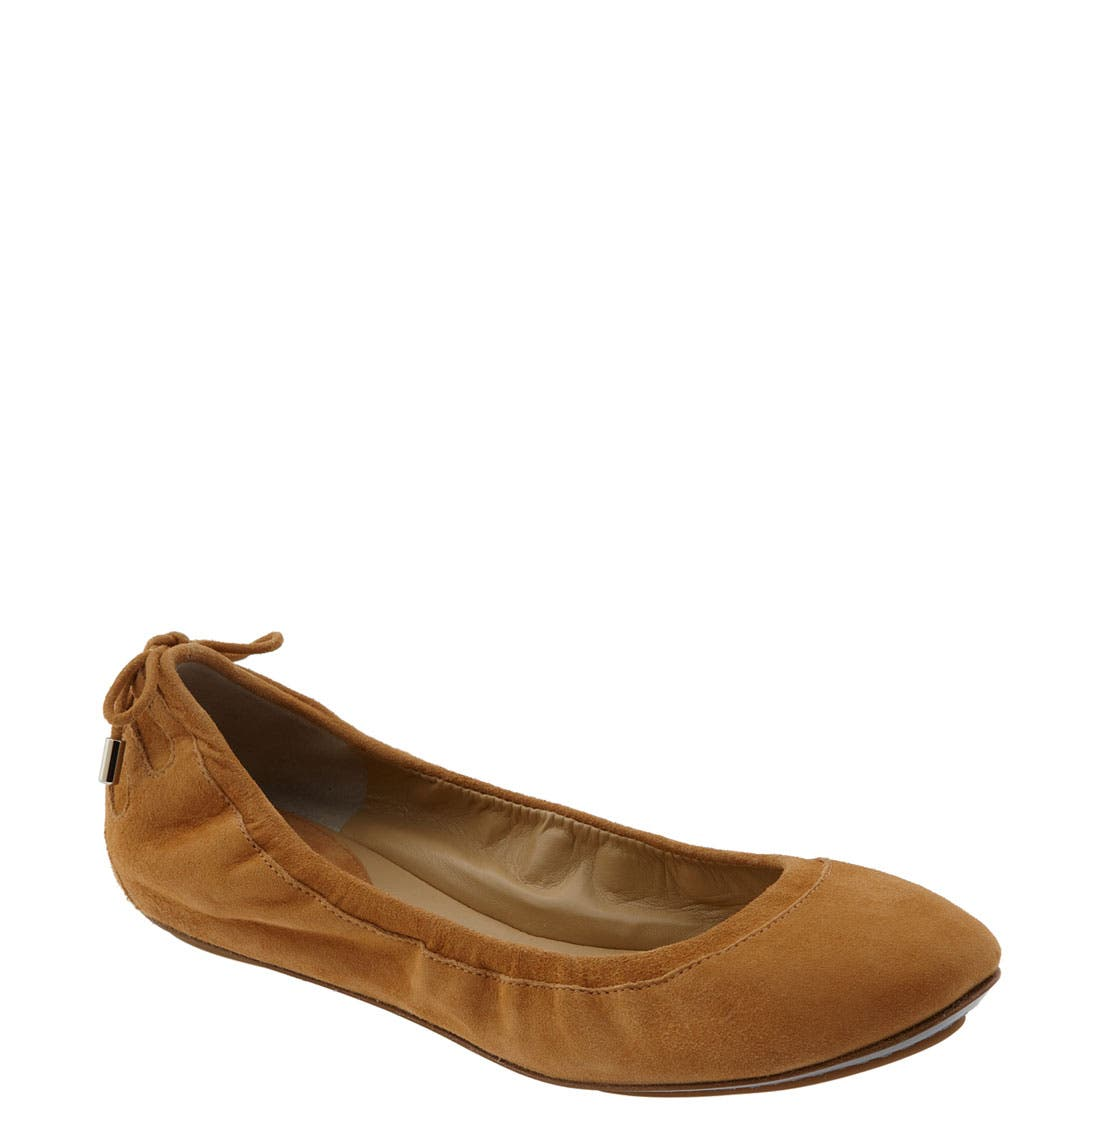 ,                             Maria Sharapova by Cole Haan 'Air Bacara' Flat,                             Main thumbnail 34, color,                             250